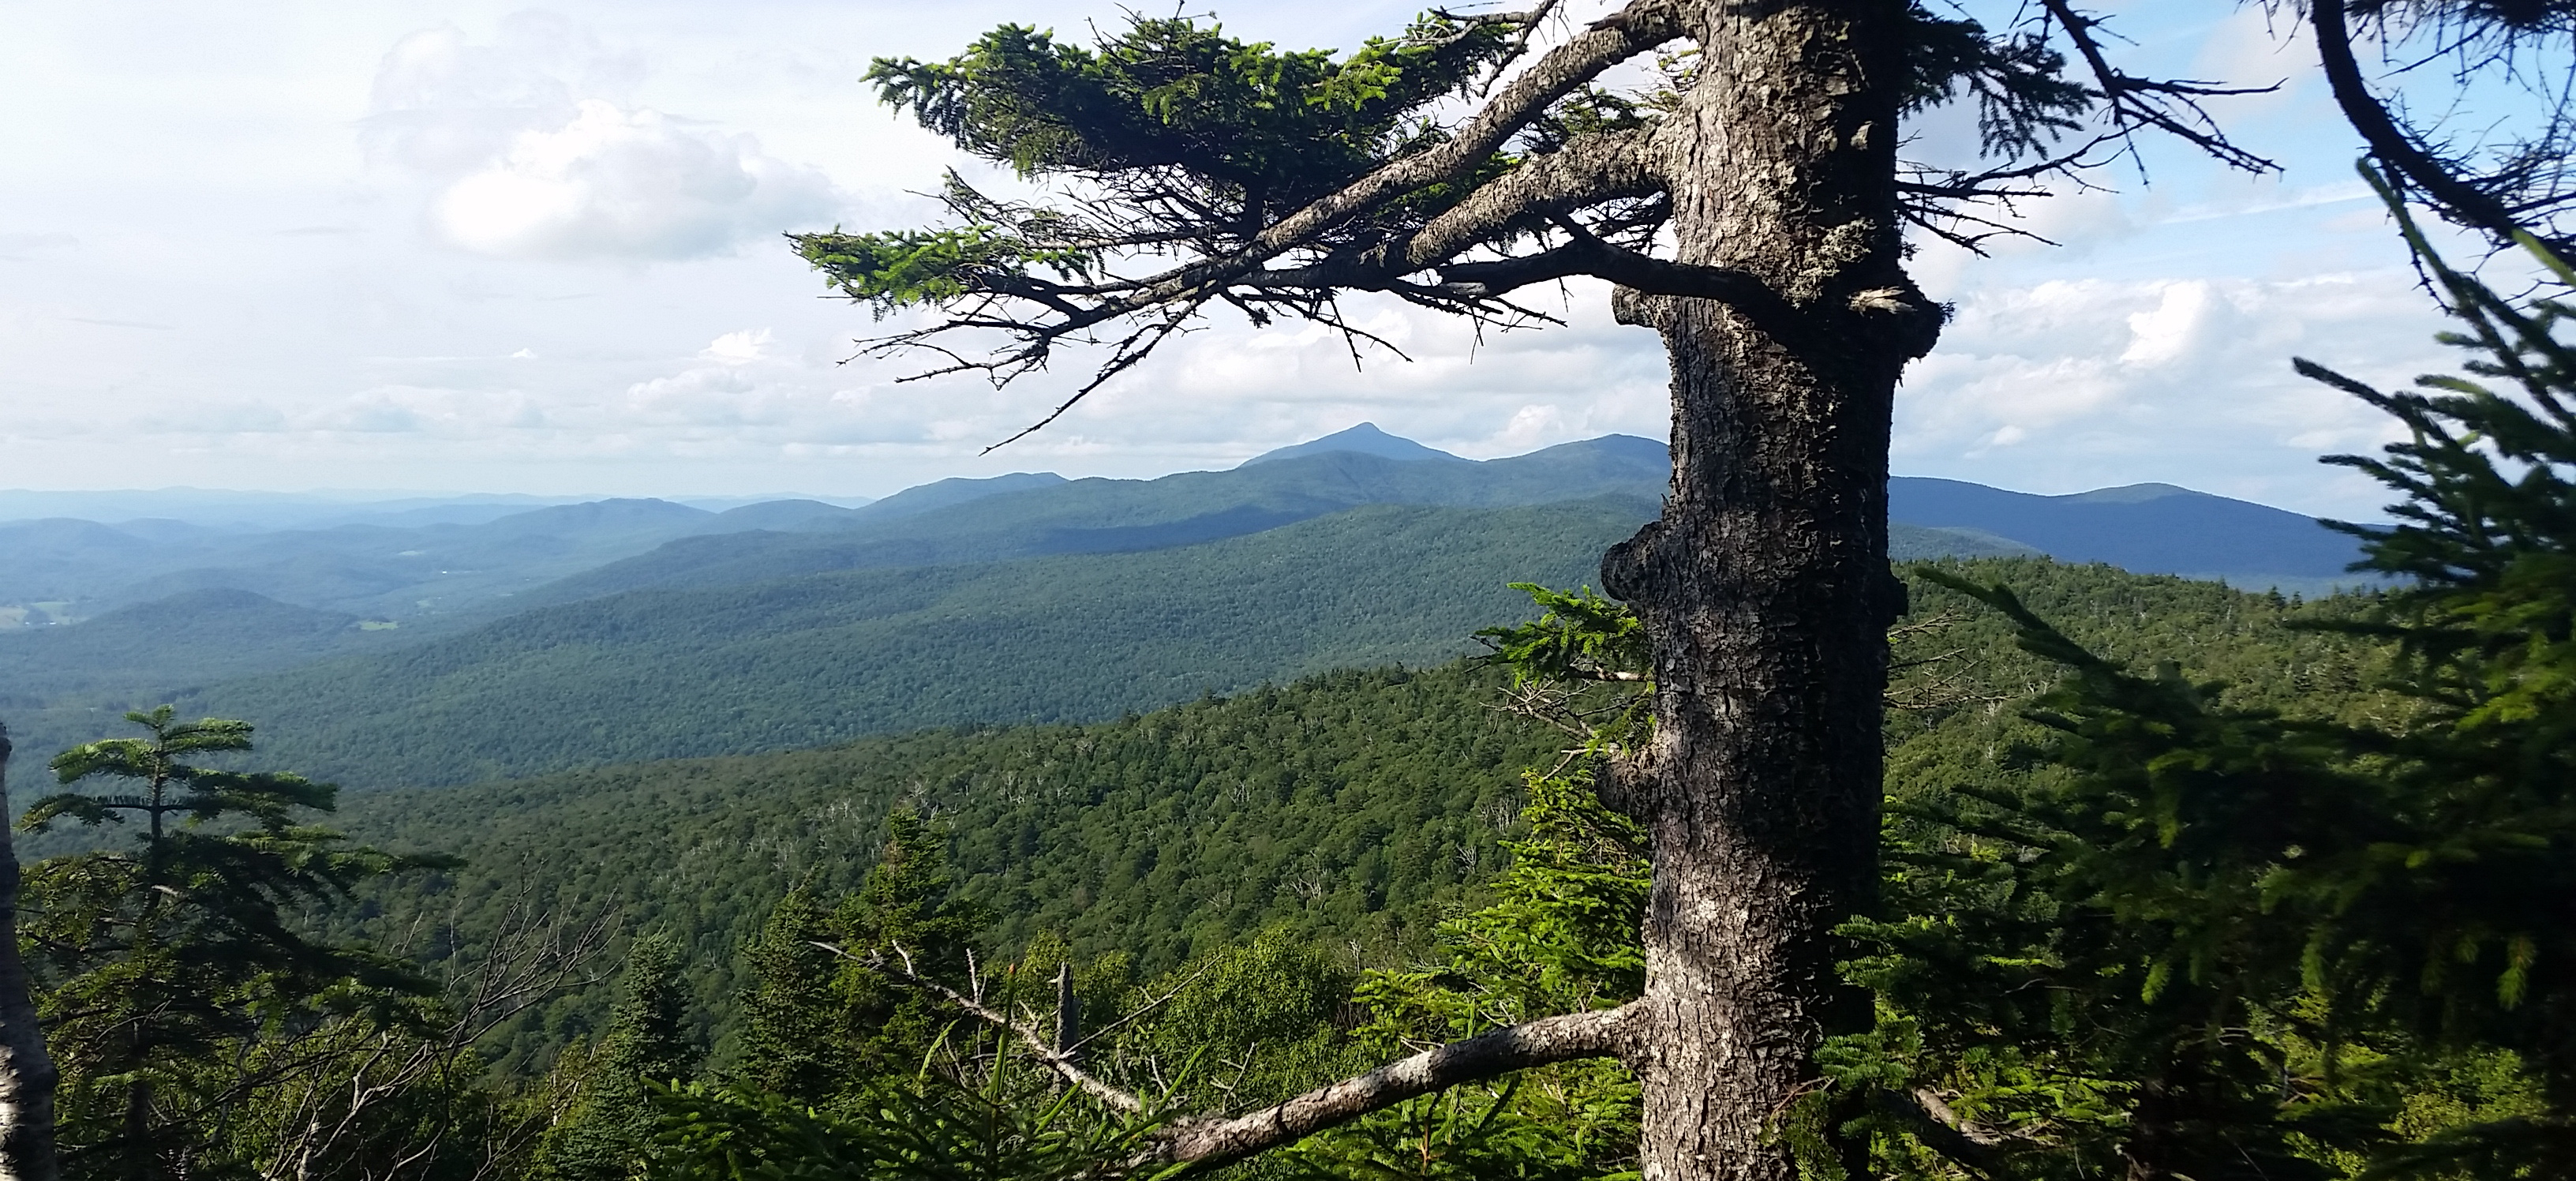 The Iconic Profile of Camel's Hump along Vermont's Long Trail